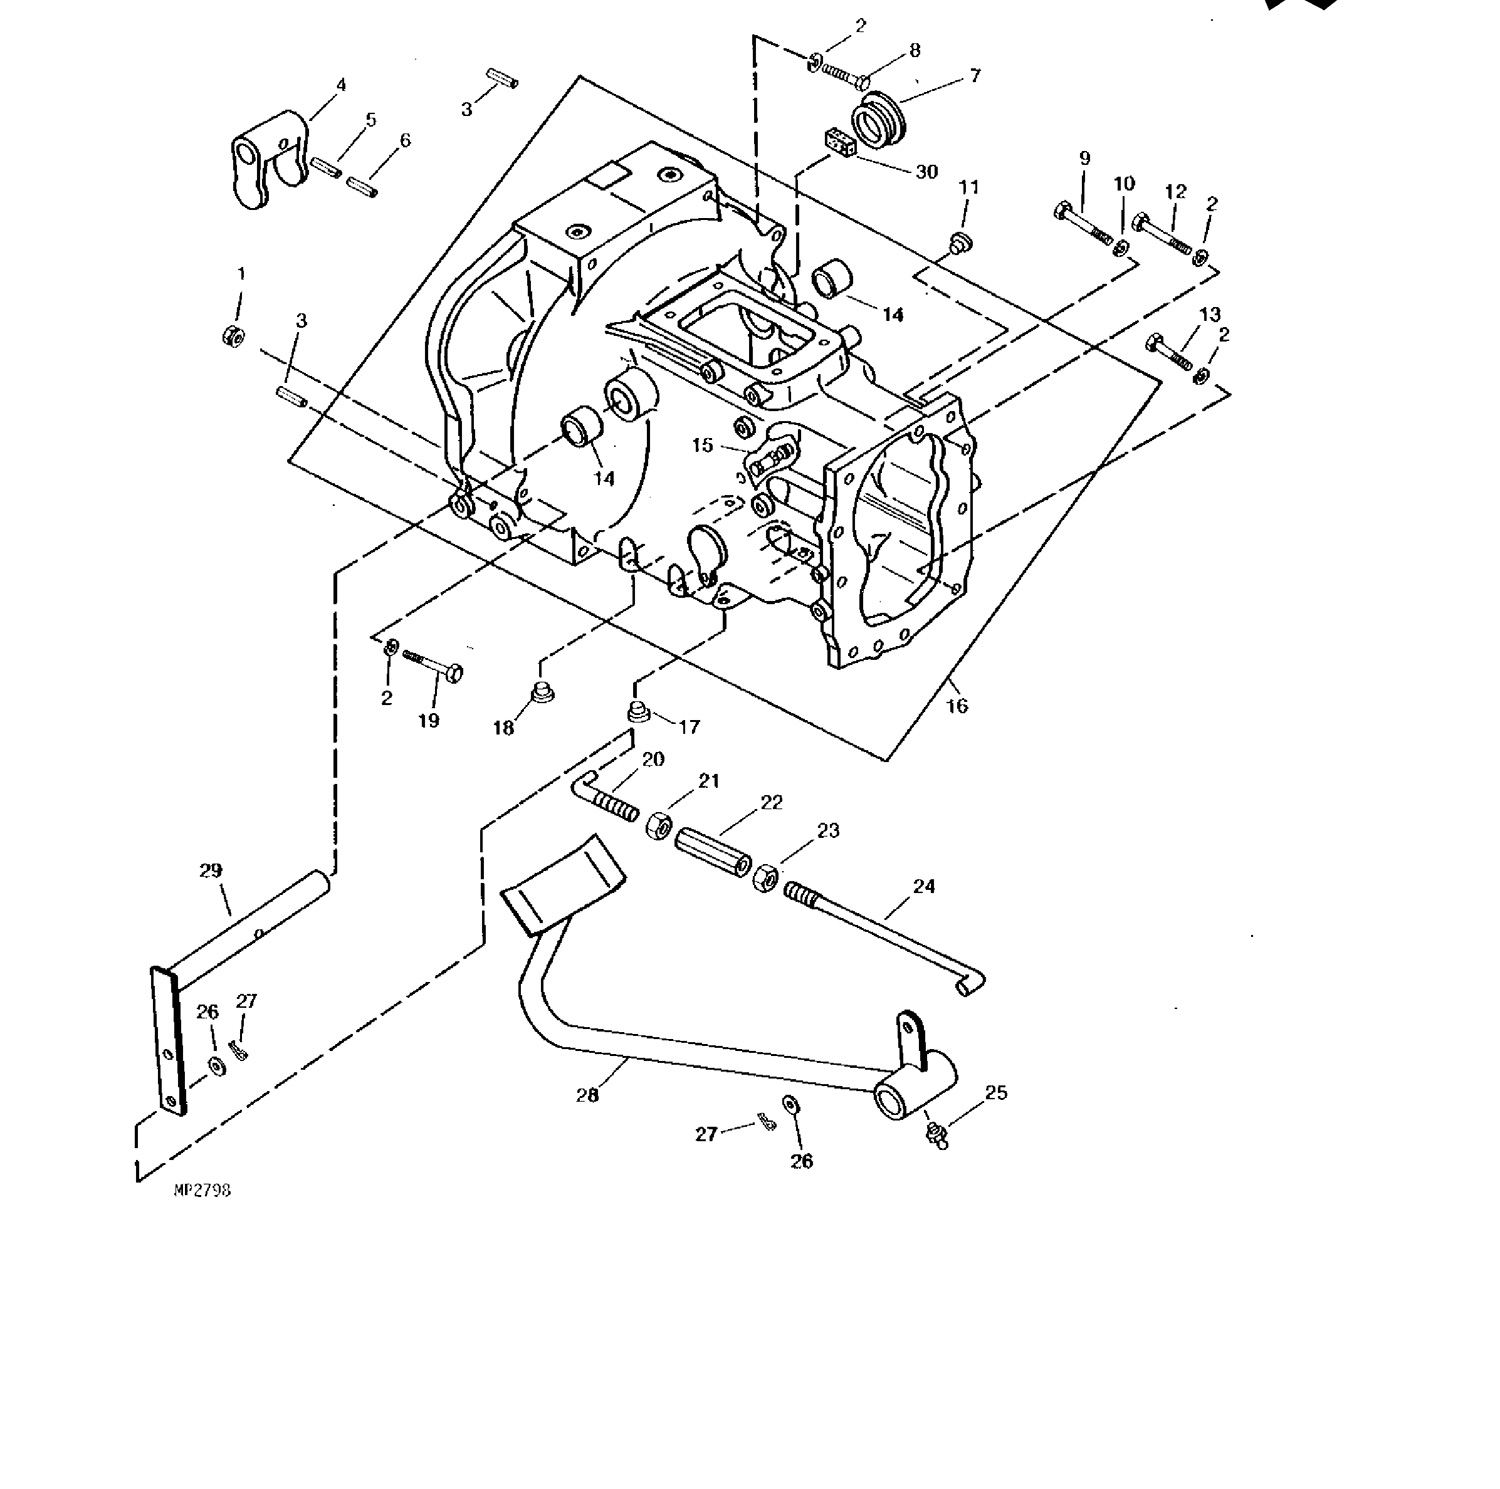 branson tractor wiring diagram clutch rod end  l h thread ch11398 john deere compact  clutch rod end  l h thread ch11398 john deere compact